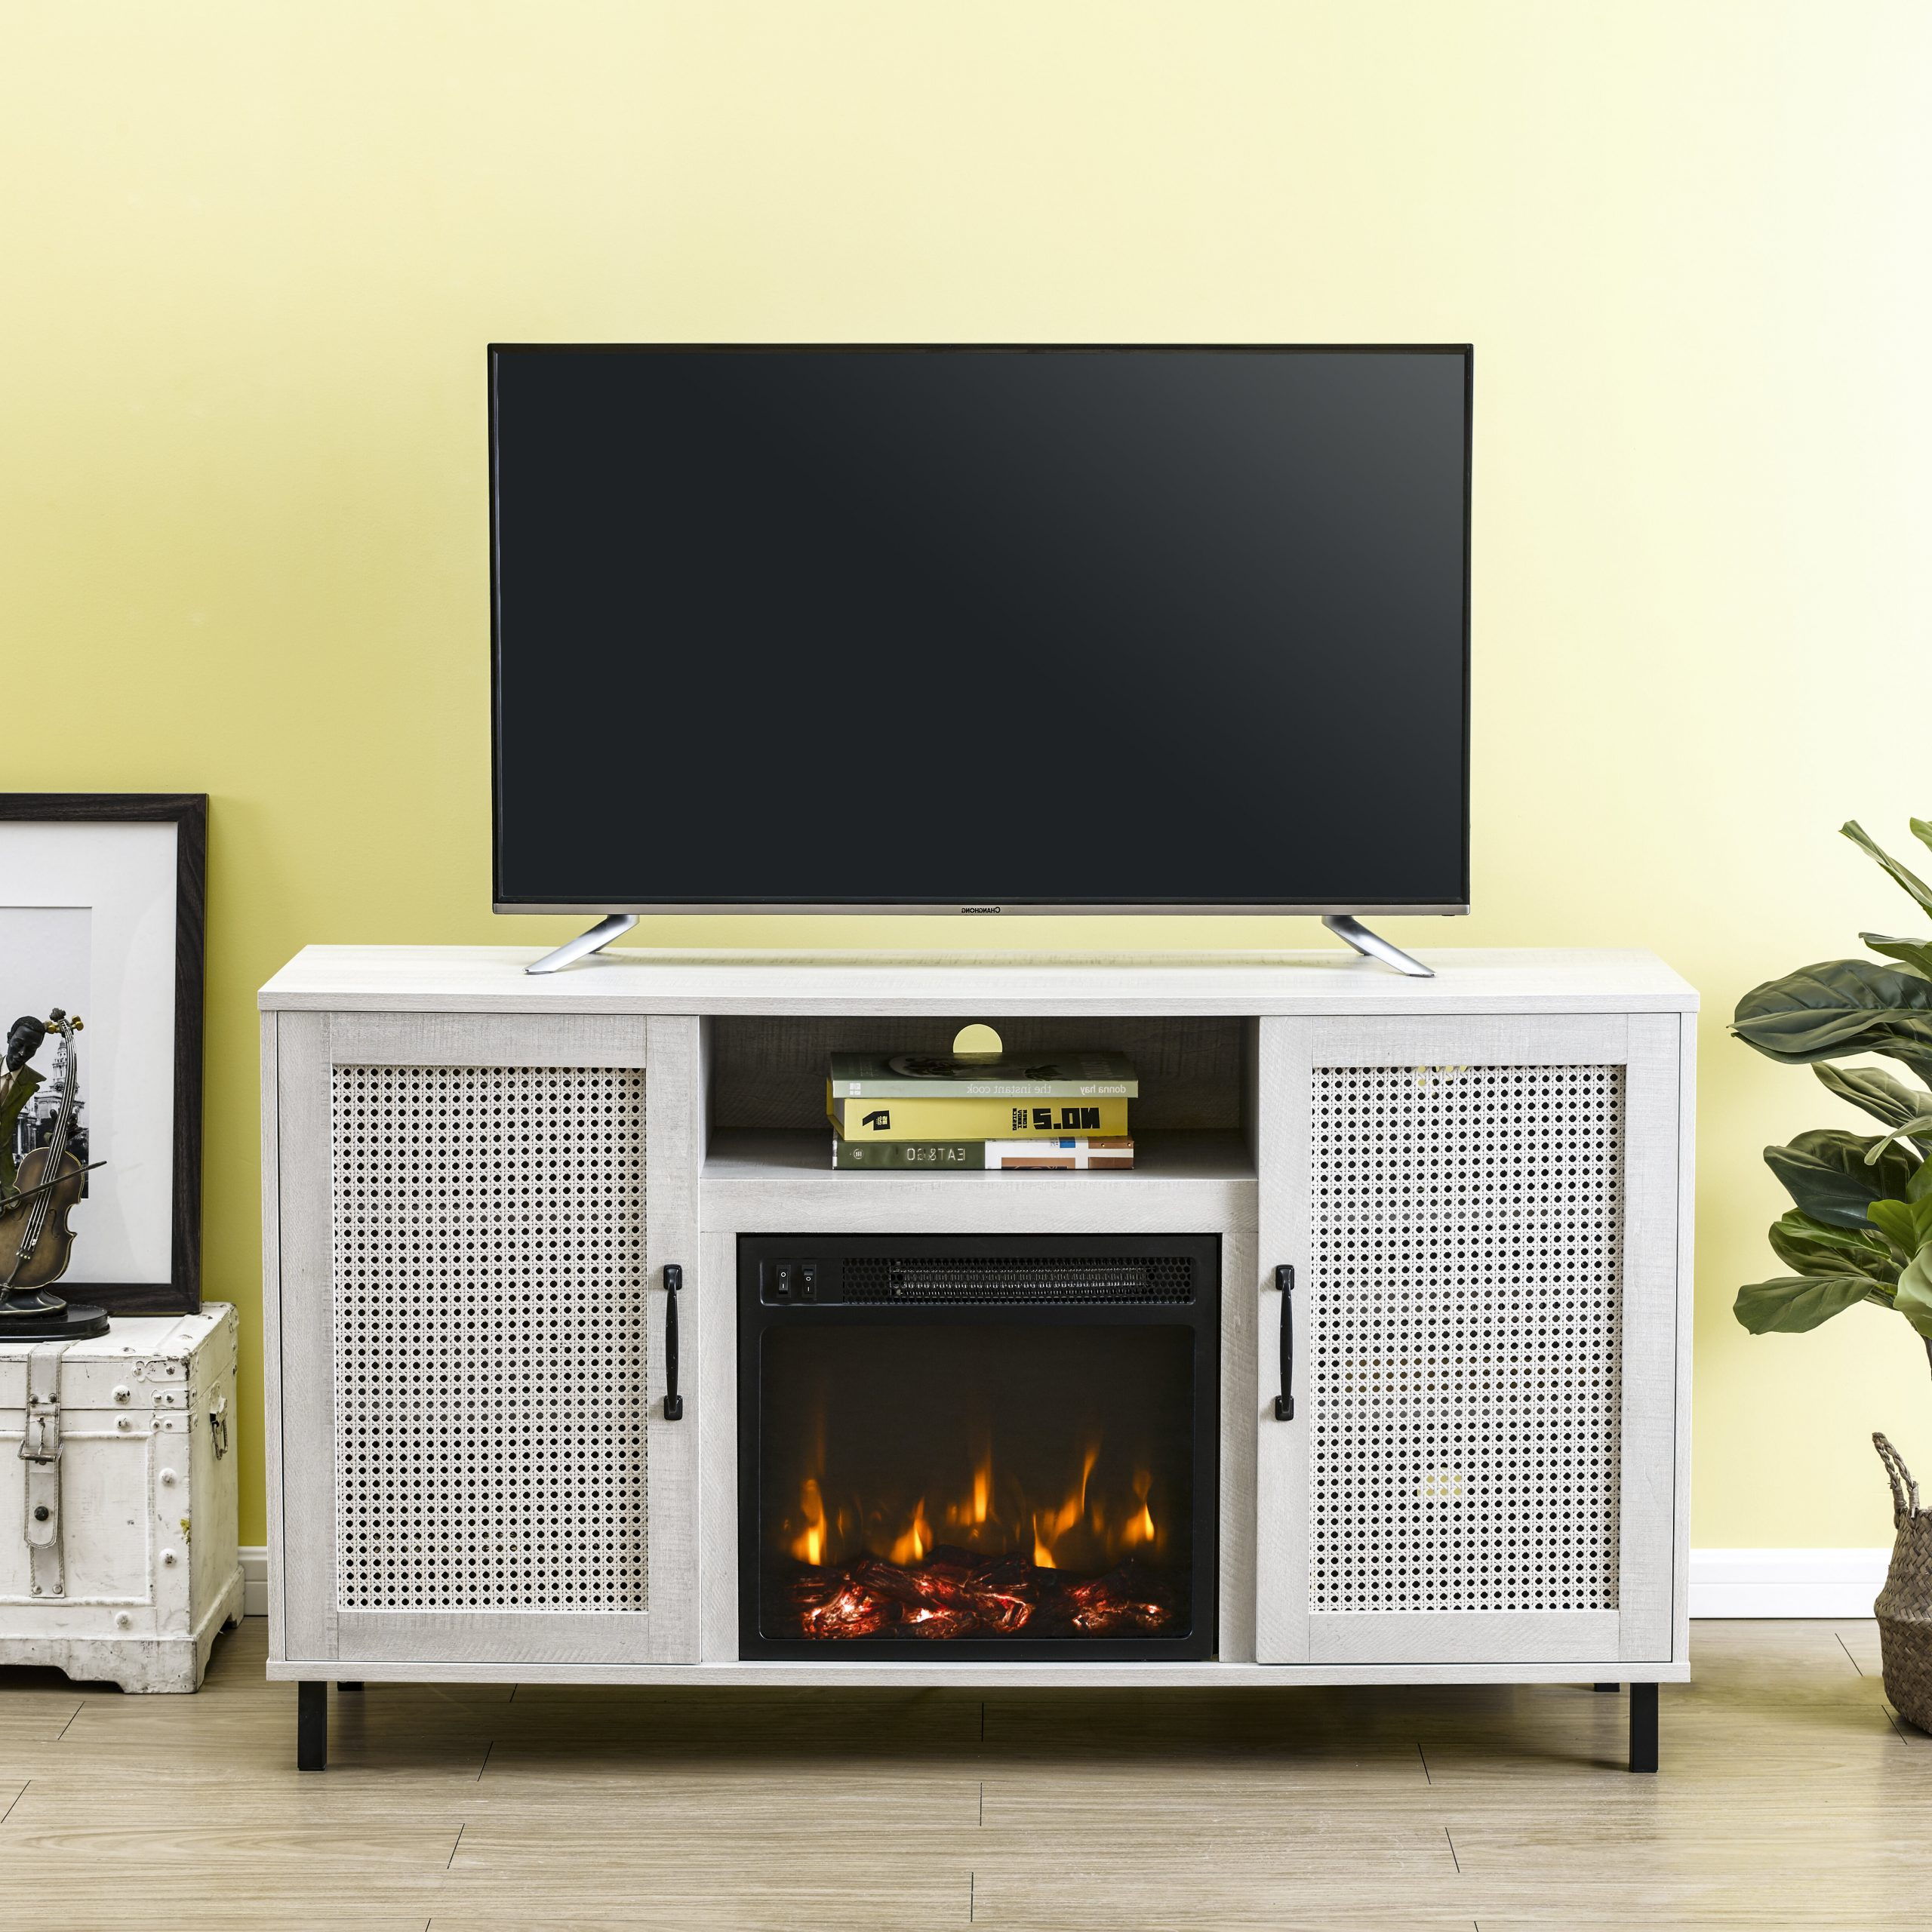 """Earlham Tv Stand For Tvs Up To 60"""" With Electric Fireplace Included For Eutropios Tv Stand With Electric Fireplace Included (View 11 of 20)"""